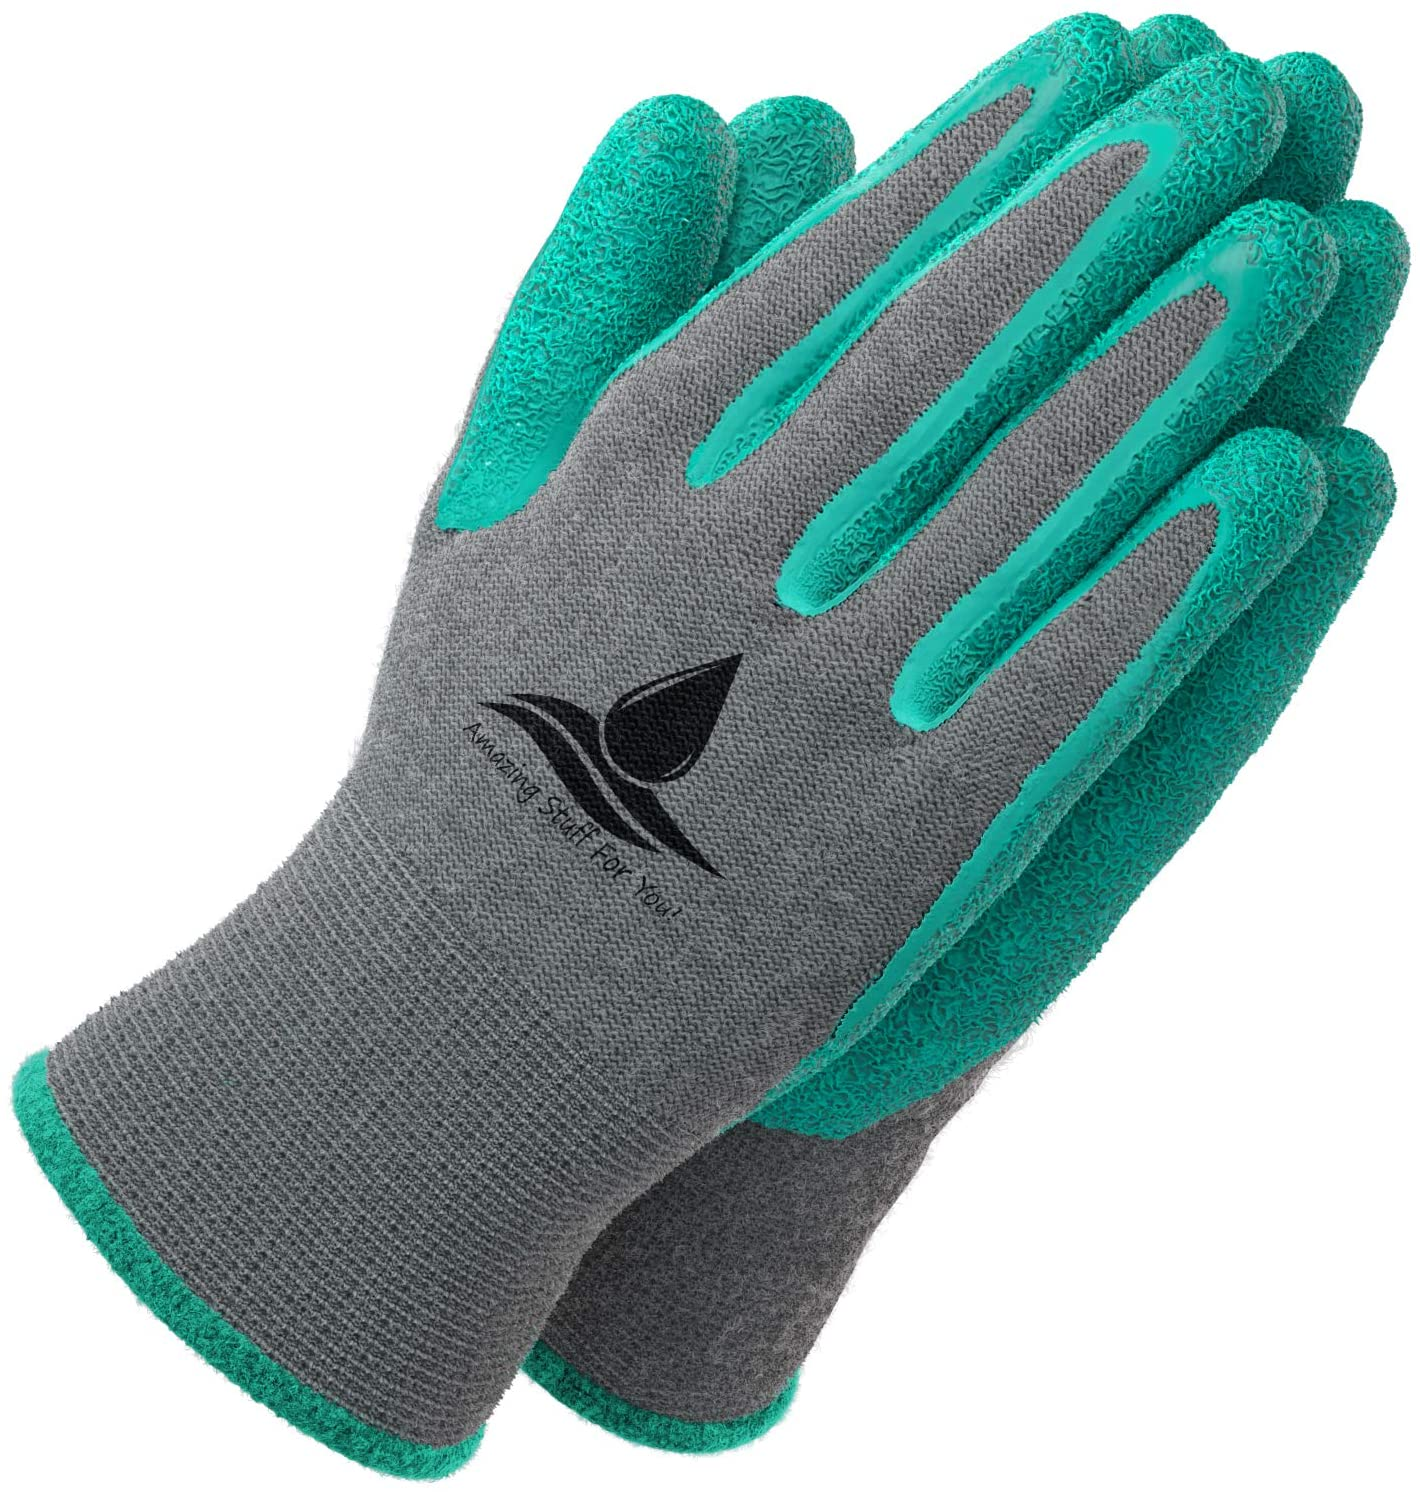 Amazing Stuff For You Coated Super Grippy Gardening Gloves, 2-Pair